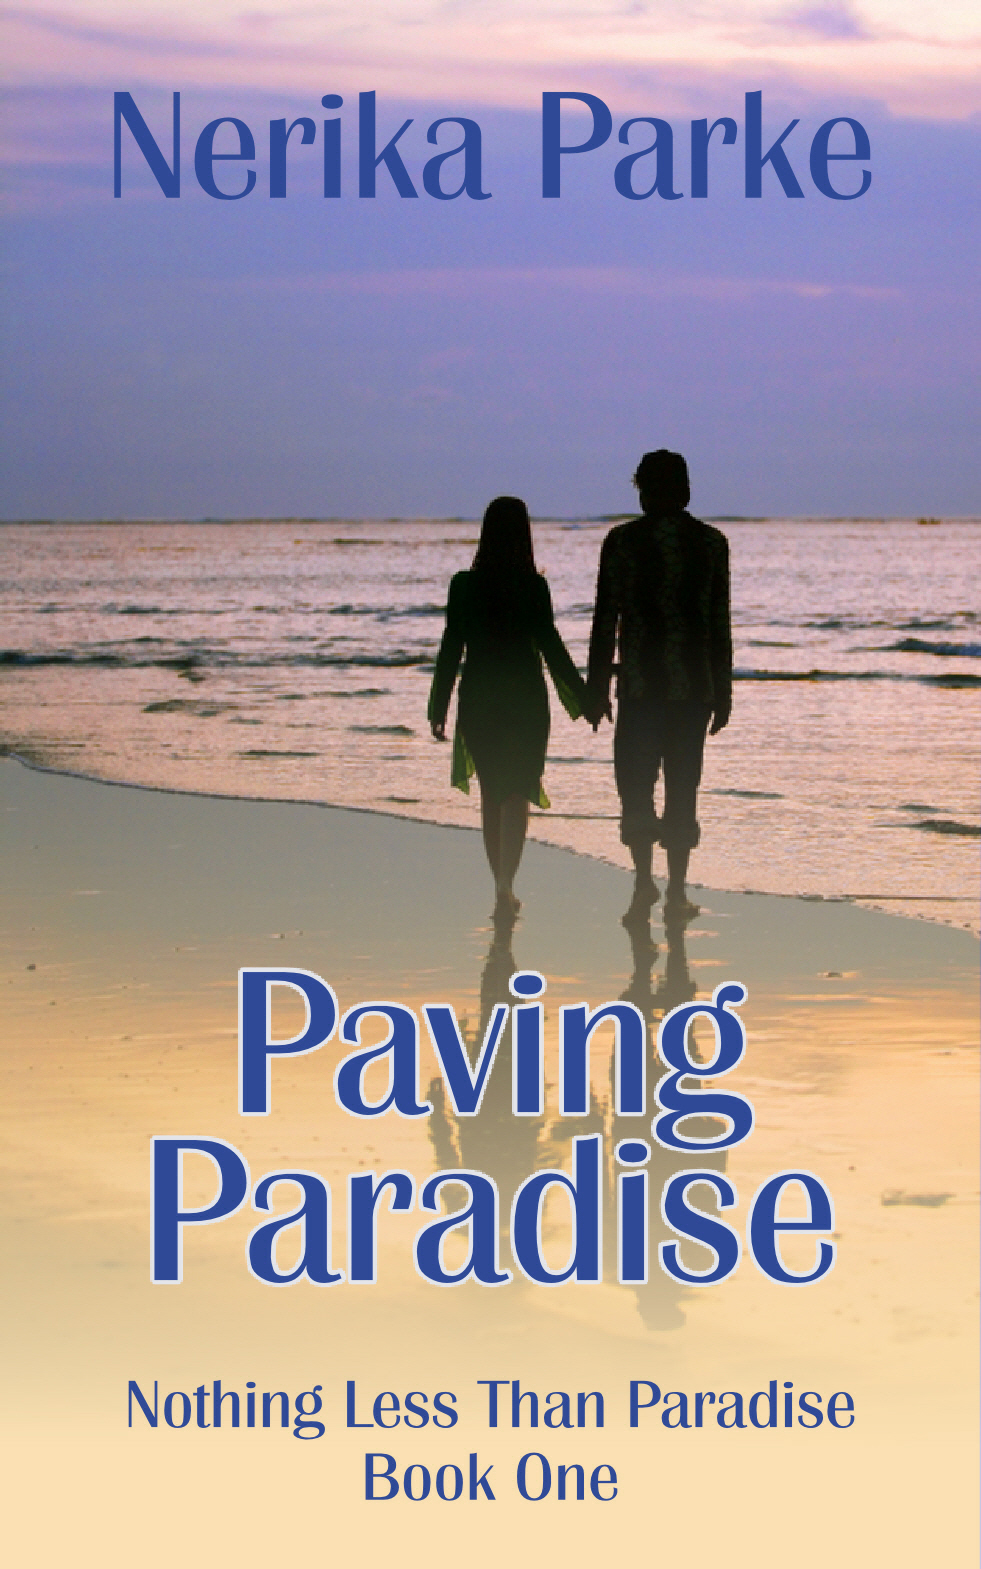 Paving Paradise cover.jpg